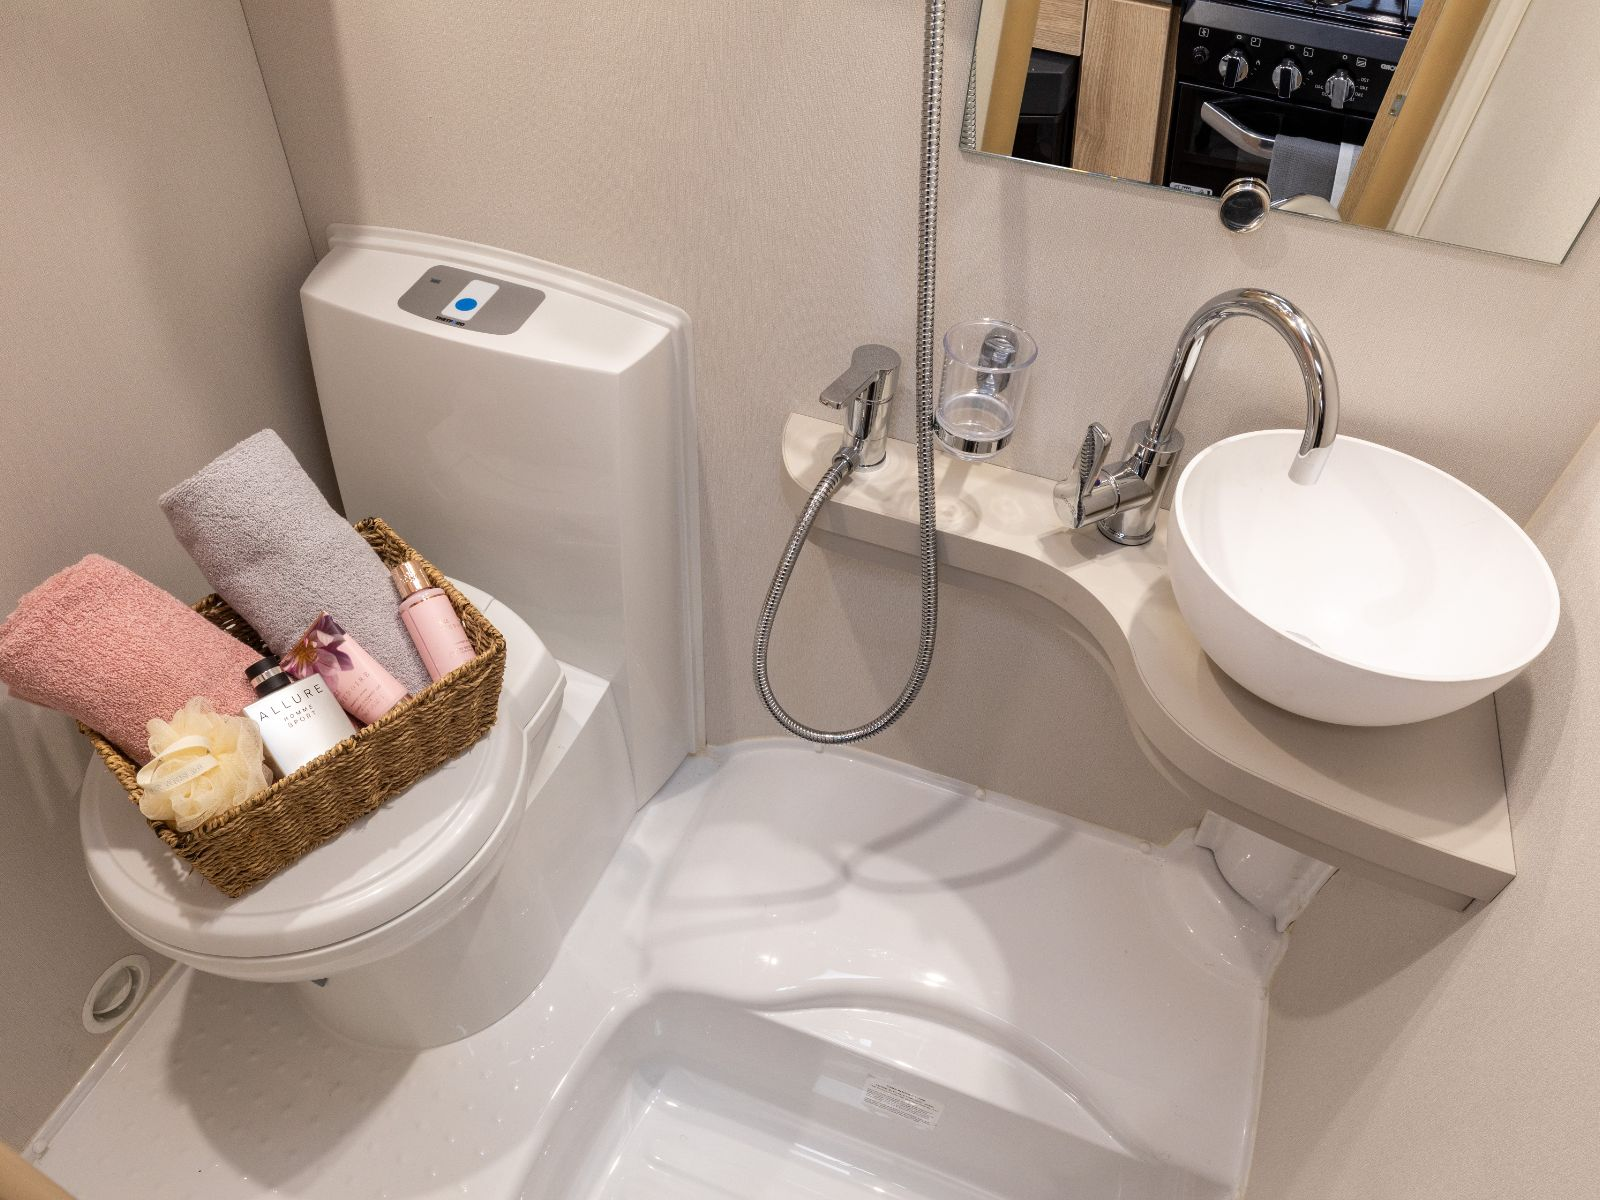 Bathroom layout with sink, shower controls and toilet with assortment of toiletries'